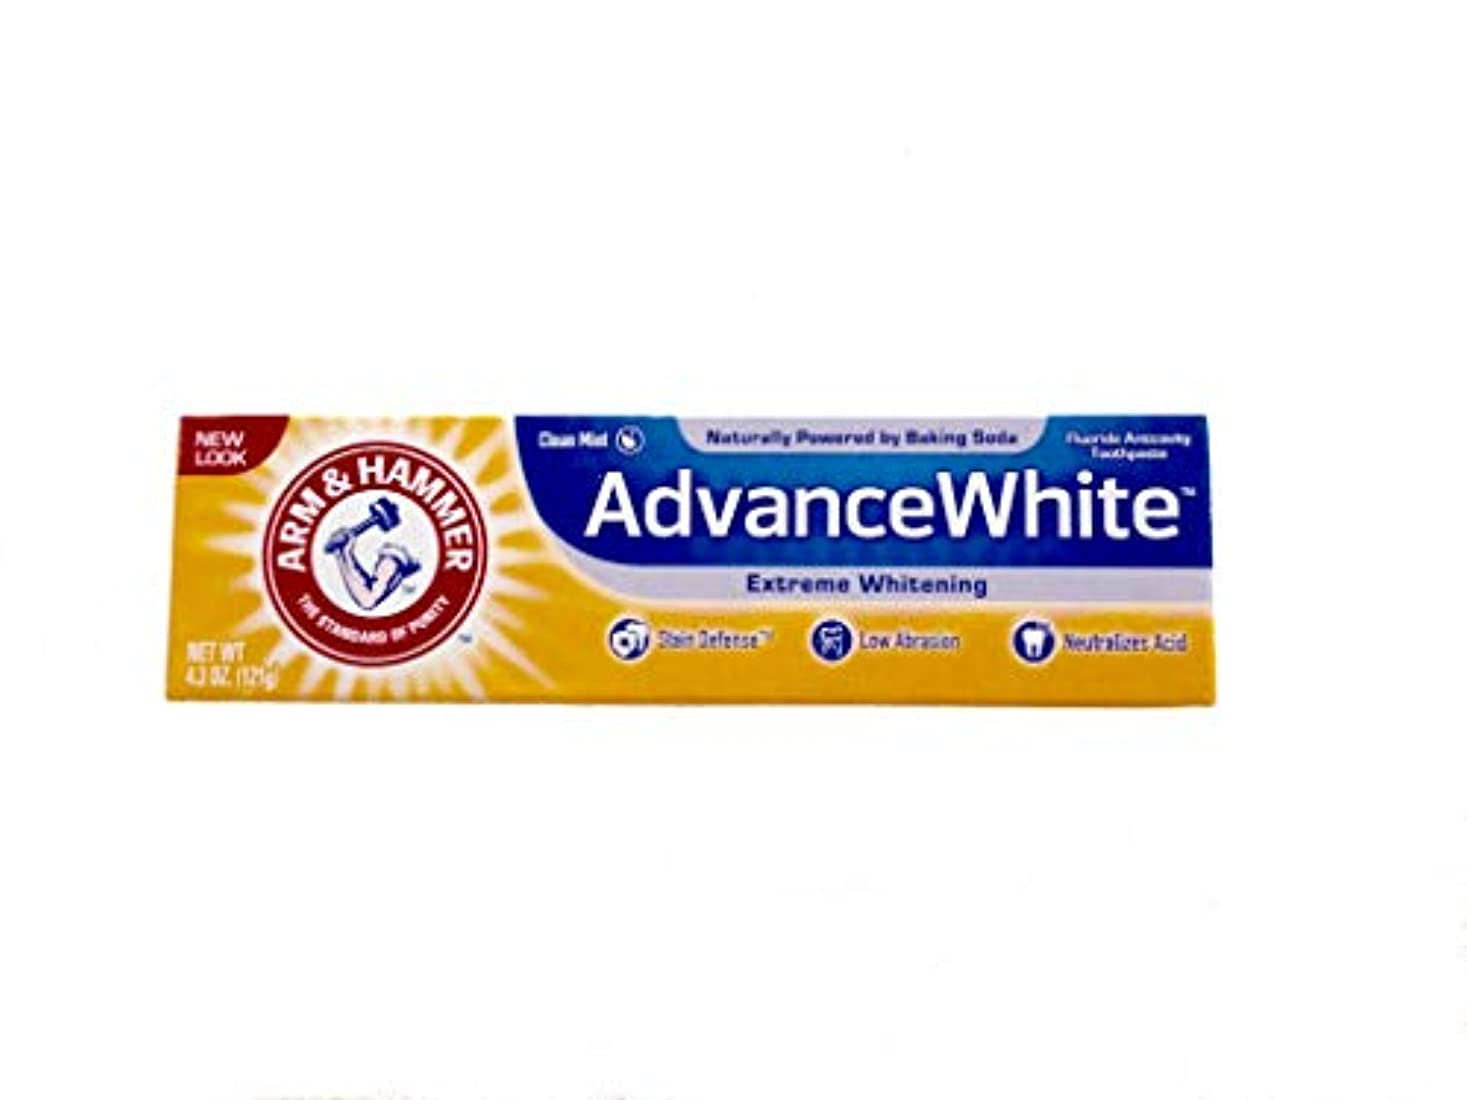 ヒューマニスティック却下する振動させるArm & Hammer Advance White Fluoride Anti-Cavity Toothpaste with Baking Soda & Peroxide - 4.3 oz by Arm & Hammer...